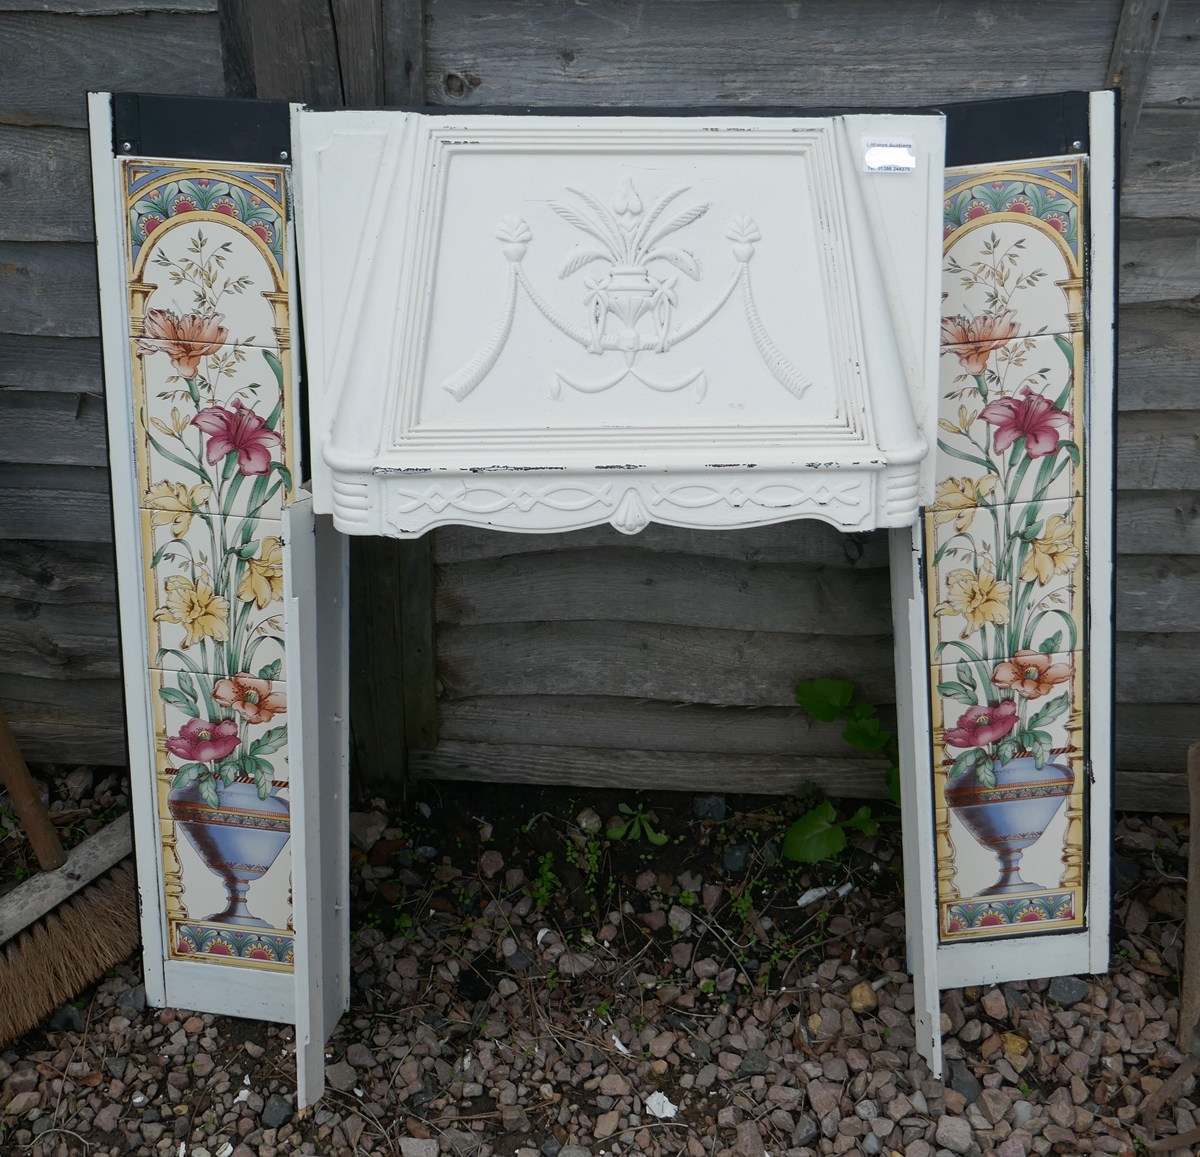 Tiled fireplace with cast iron hood